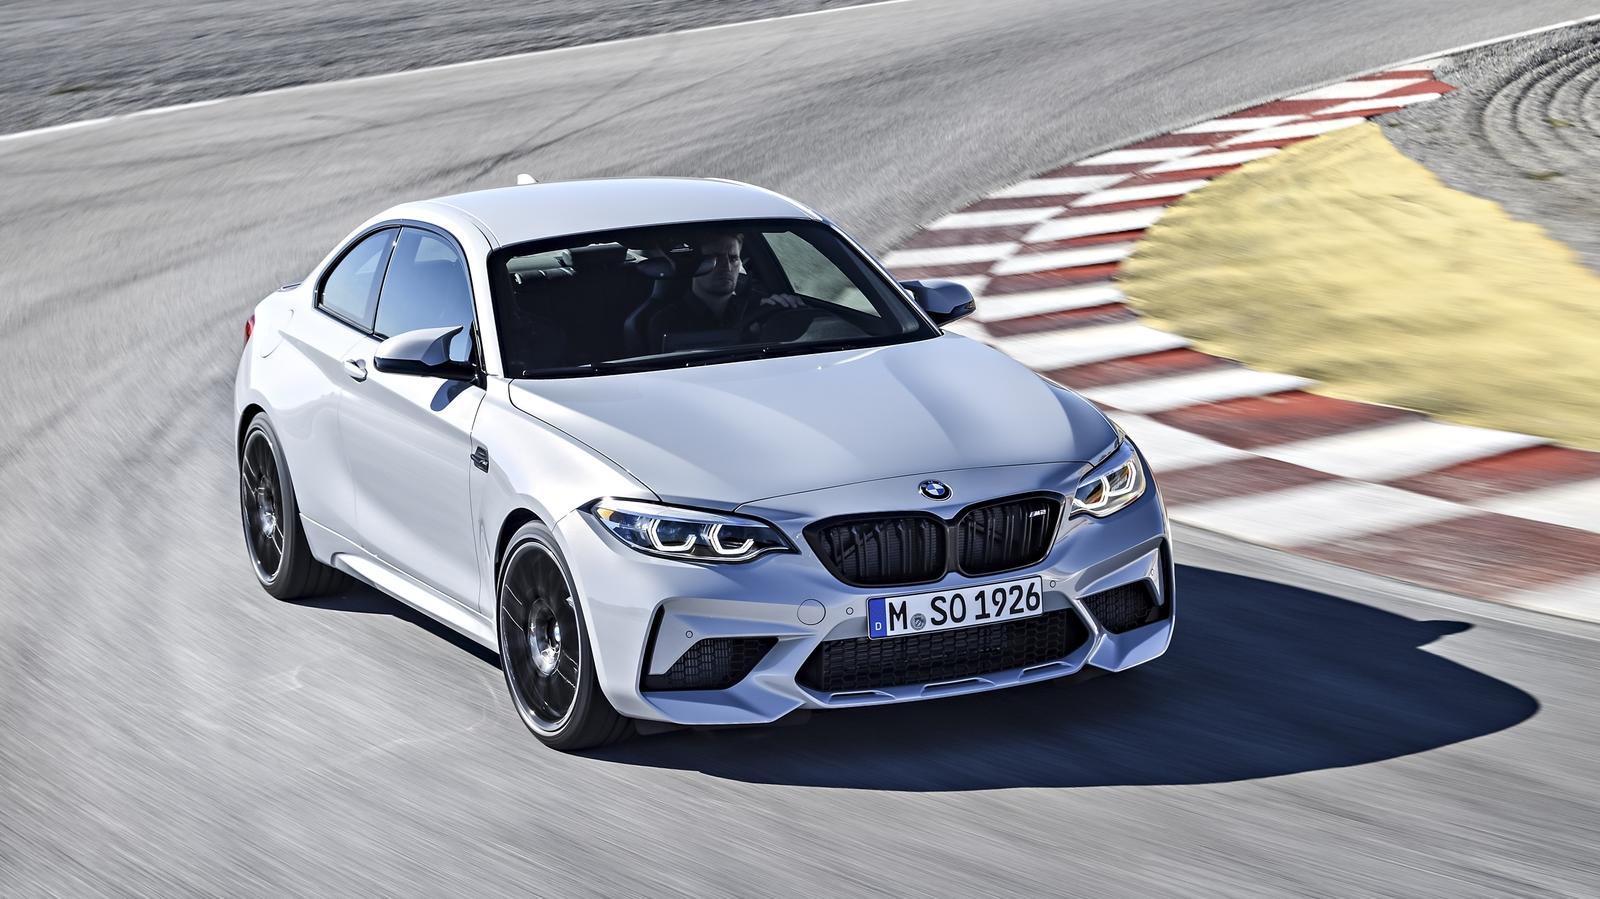 2019 Bmw M2 Competition Pictures Photos Wallpapers And Video Top Speed Bmw m2 cs 2019 4k 2 wallpaper